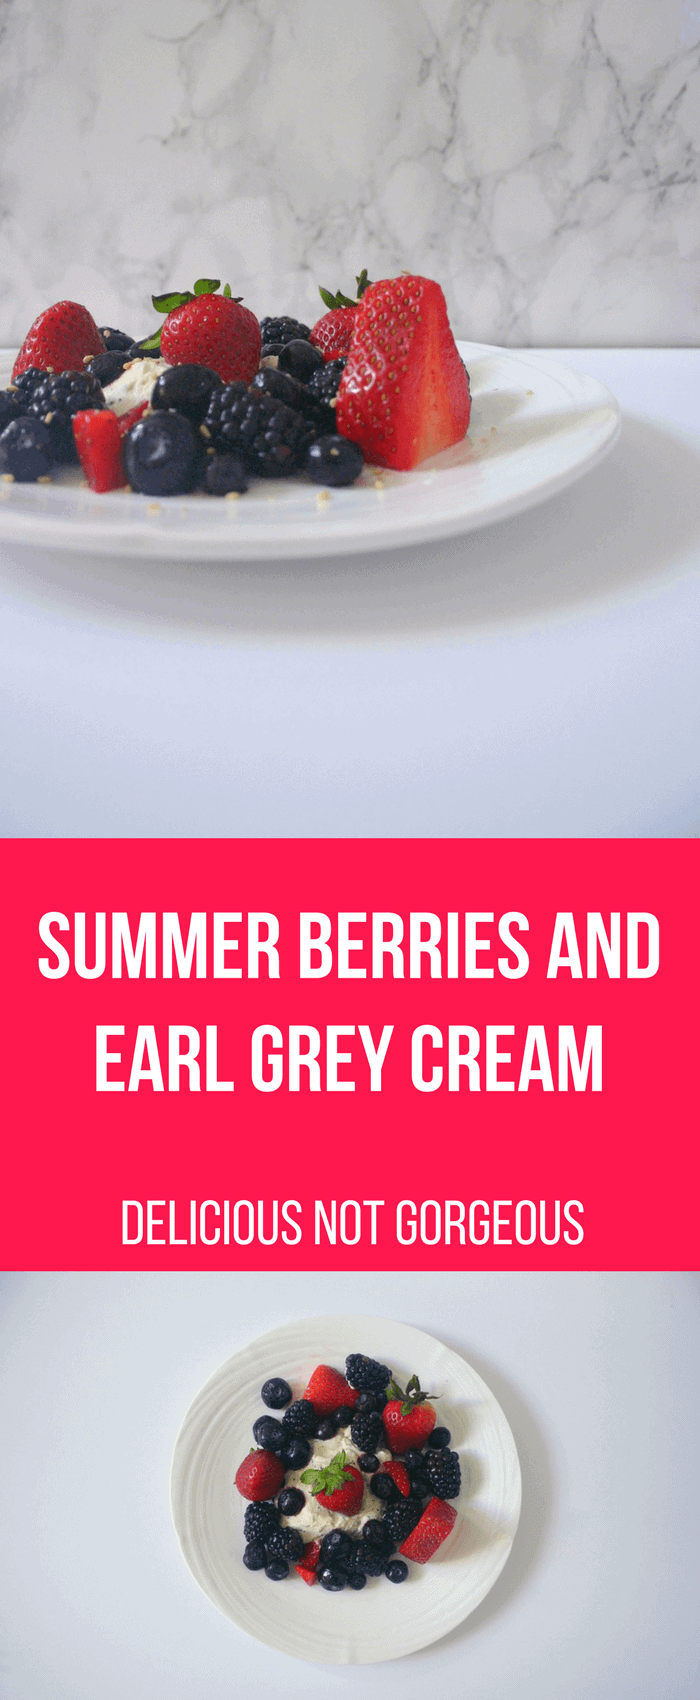 This summer berries and earl grey cream from Delicious Not Gorgeous is a great way to celebrate the fourth of July and a delicious excuse to eat more whipped cream. #berries #earlgreytea #whippedcream